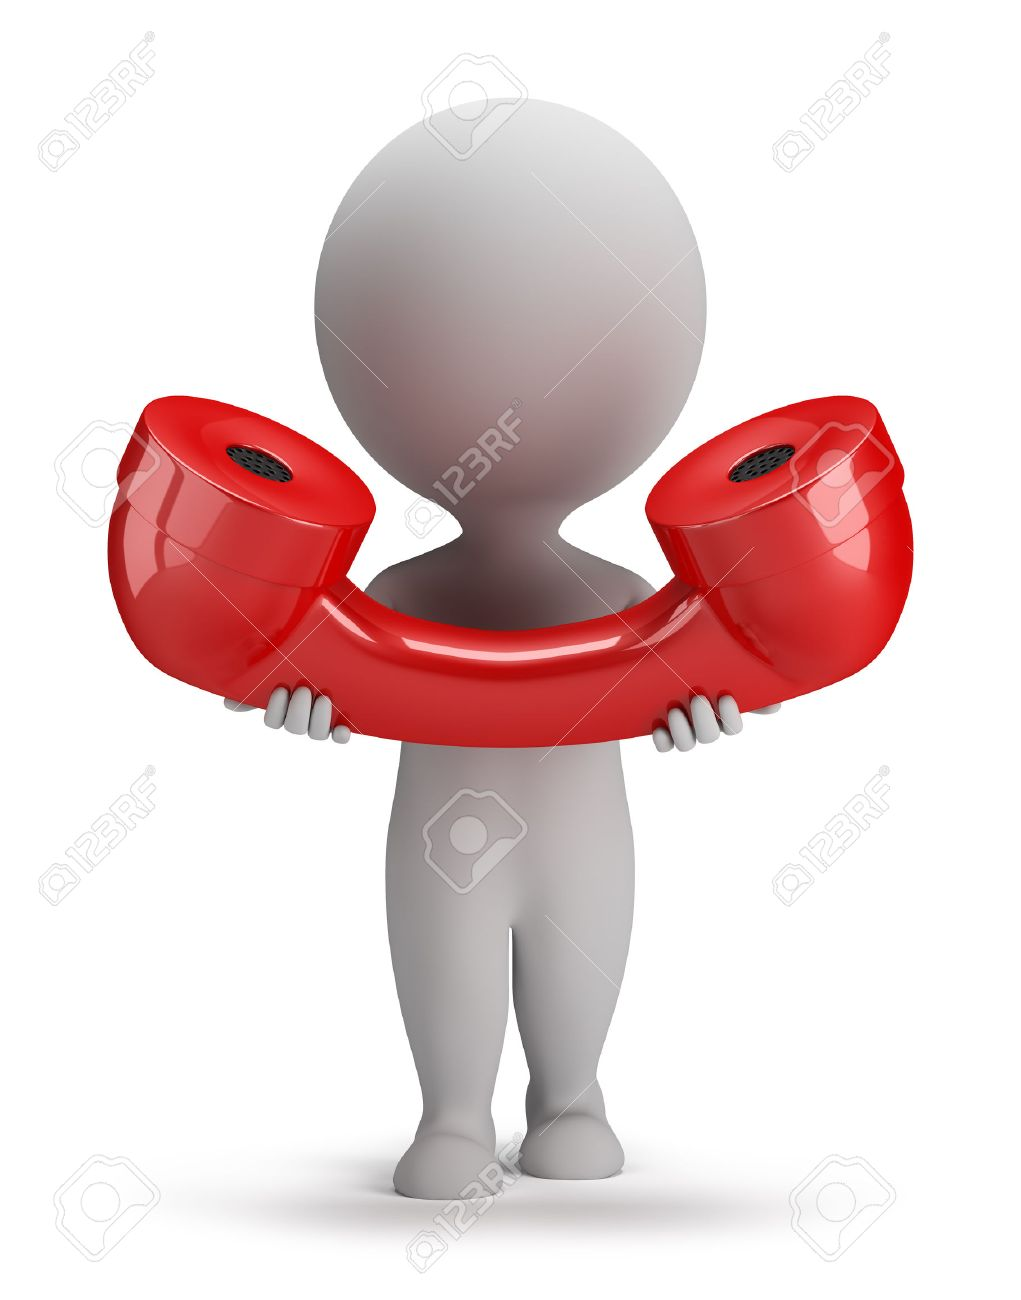 3d small person with a big red telephone receiver in hand. 3d image. White background. - 29728778